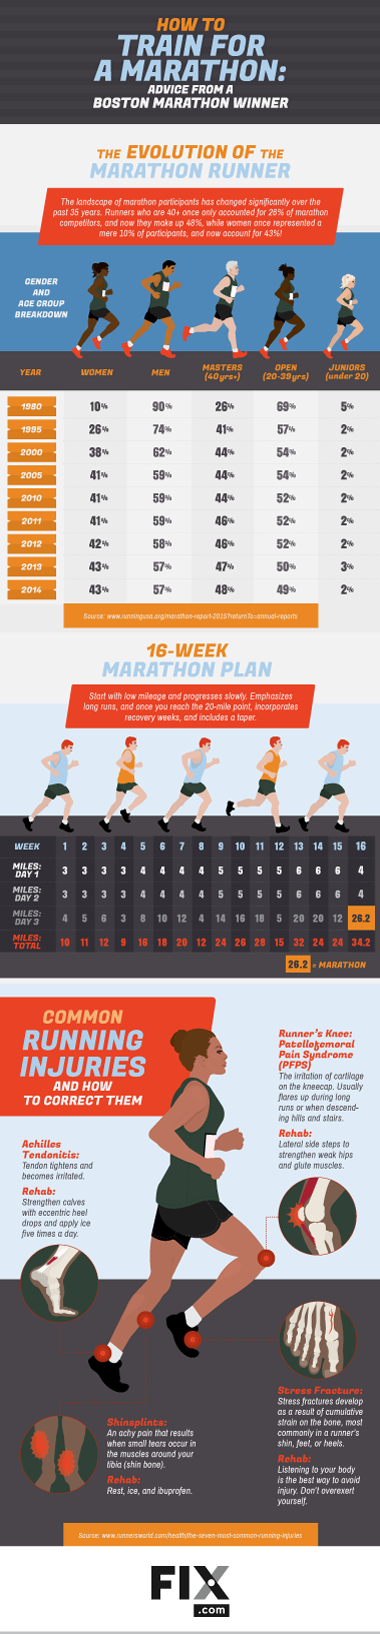 marathon-training-embed-small